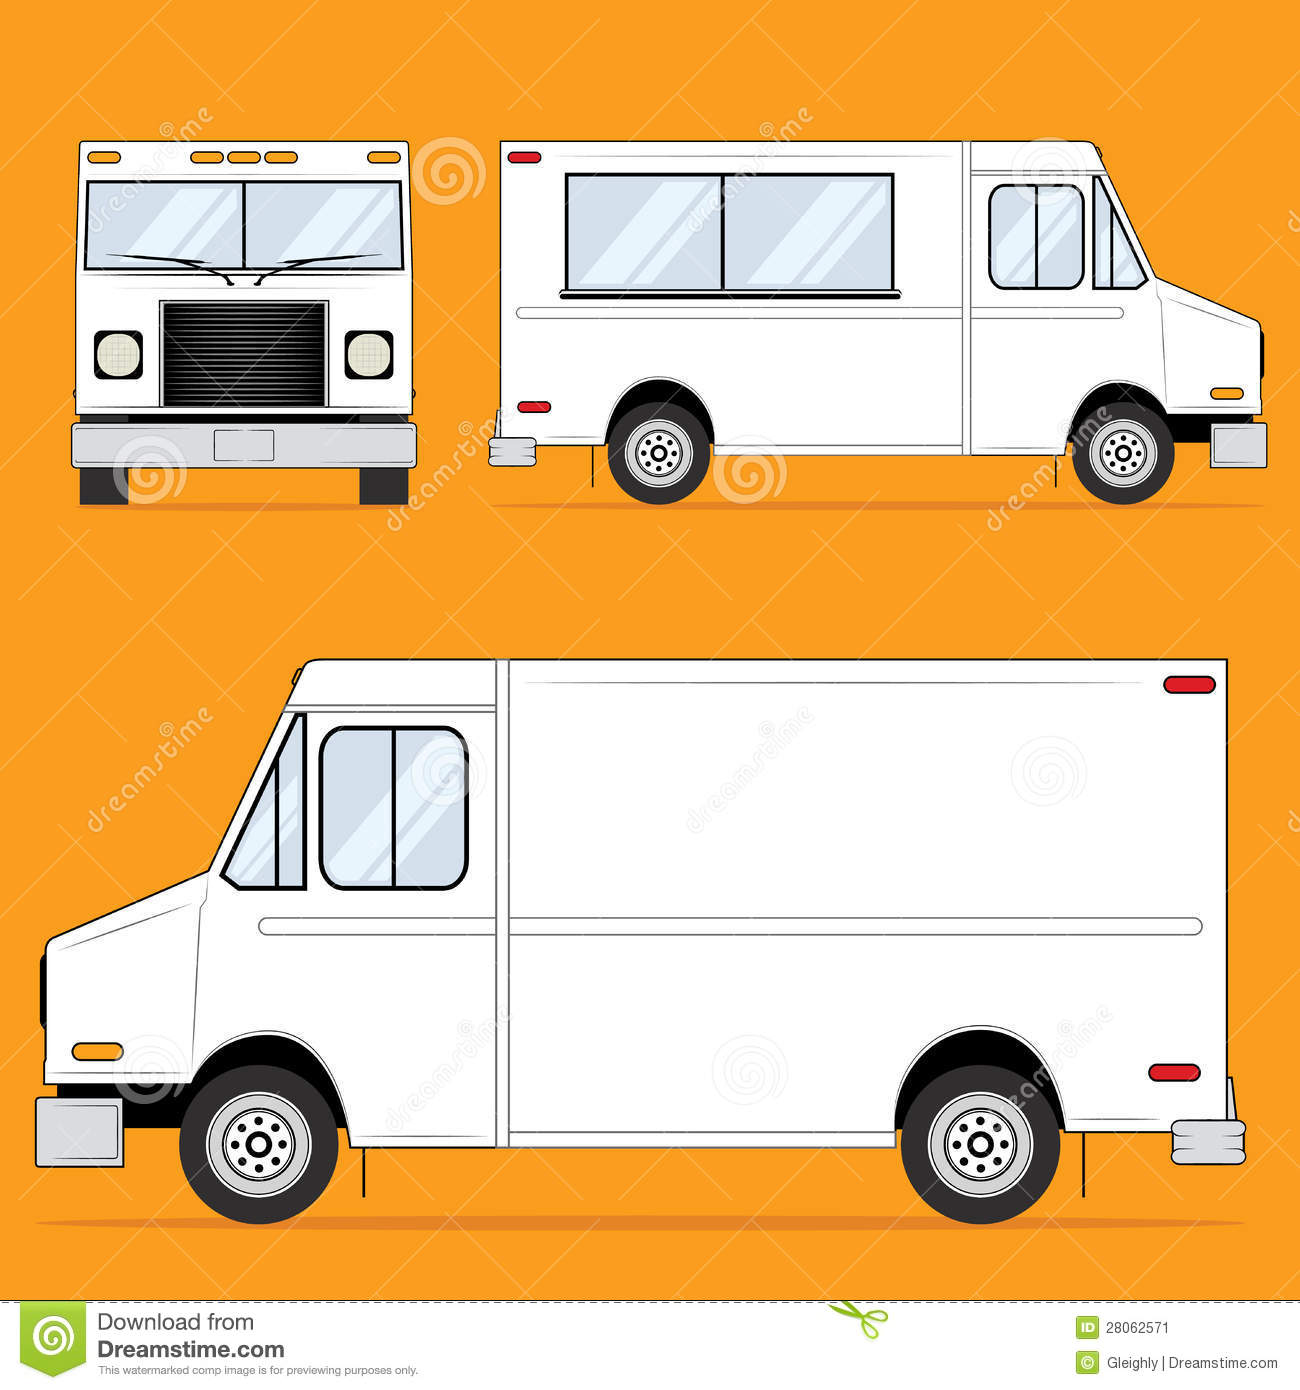 Food Truck Blank Stock Image Image 28062571